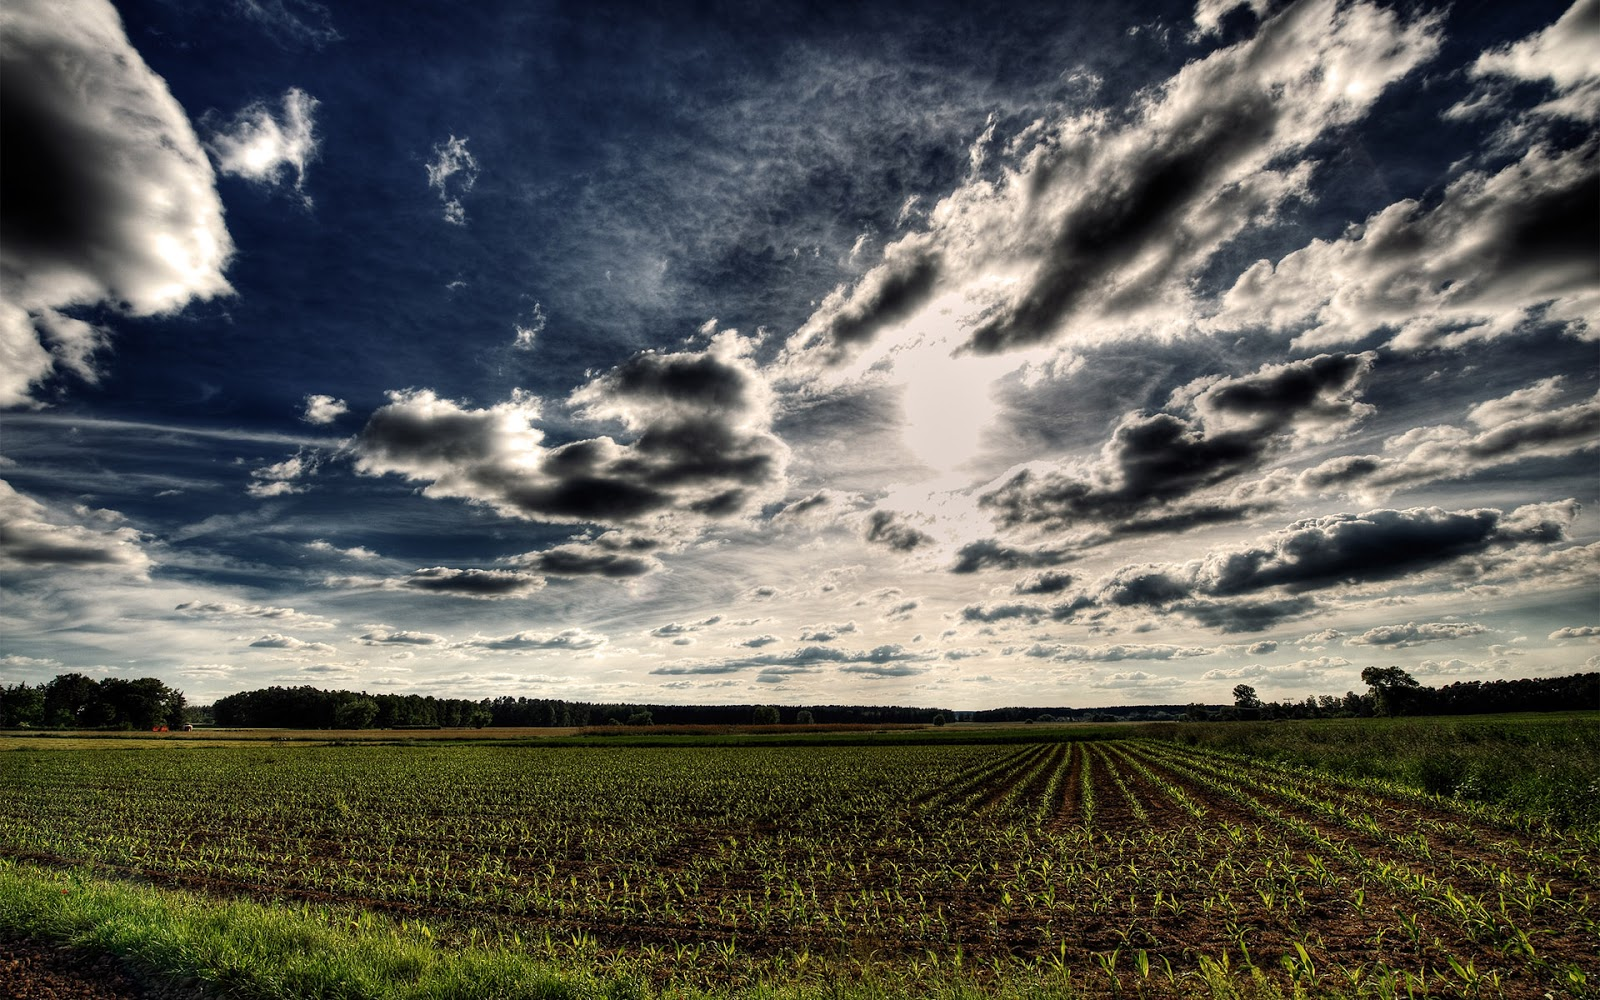 Free HD Images (FIFCU Purchased): 19 Clouds and Scenary Images - HDR